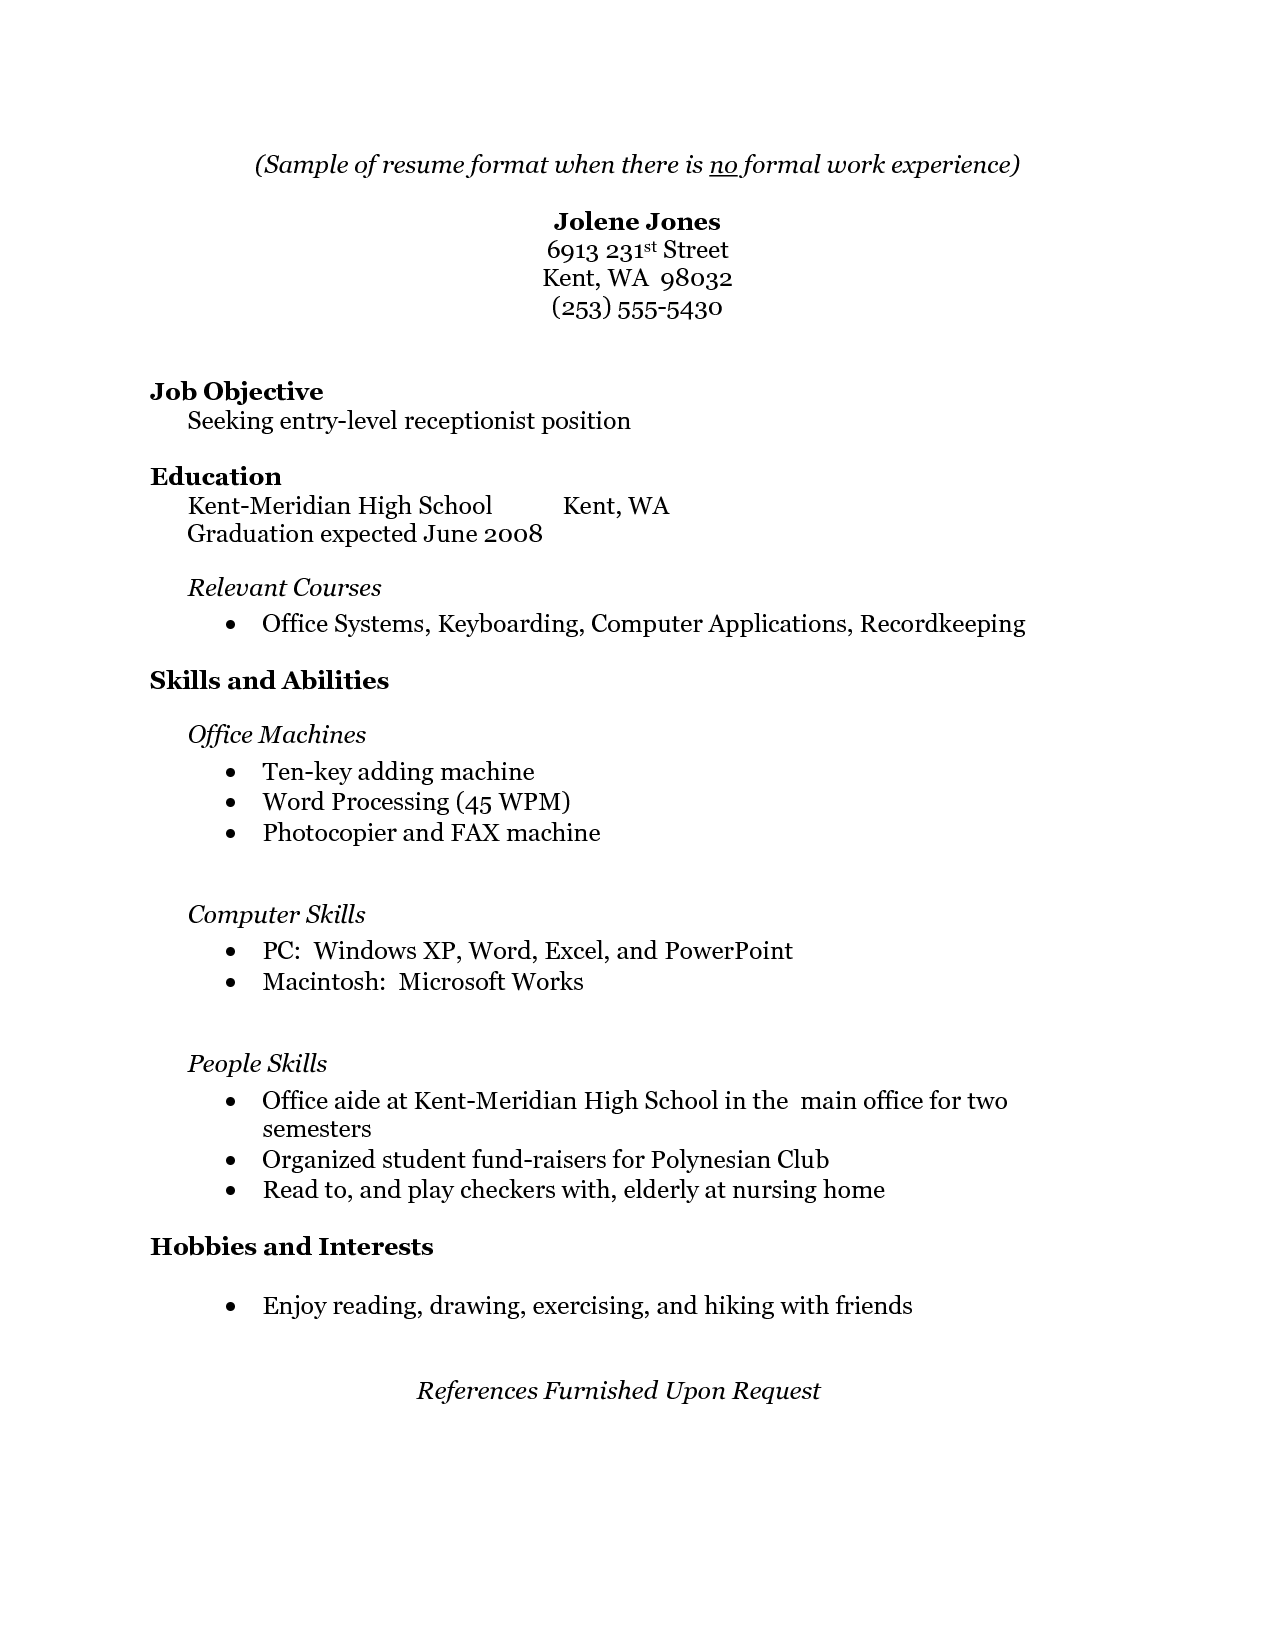 Resume For College Student With No Work Experience Job Resume No Experience Examples  Httpwwwresumecareer